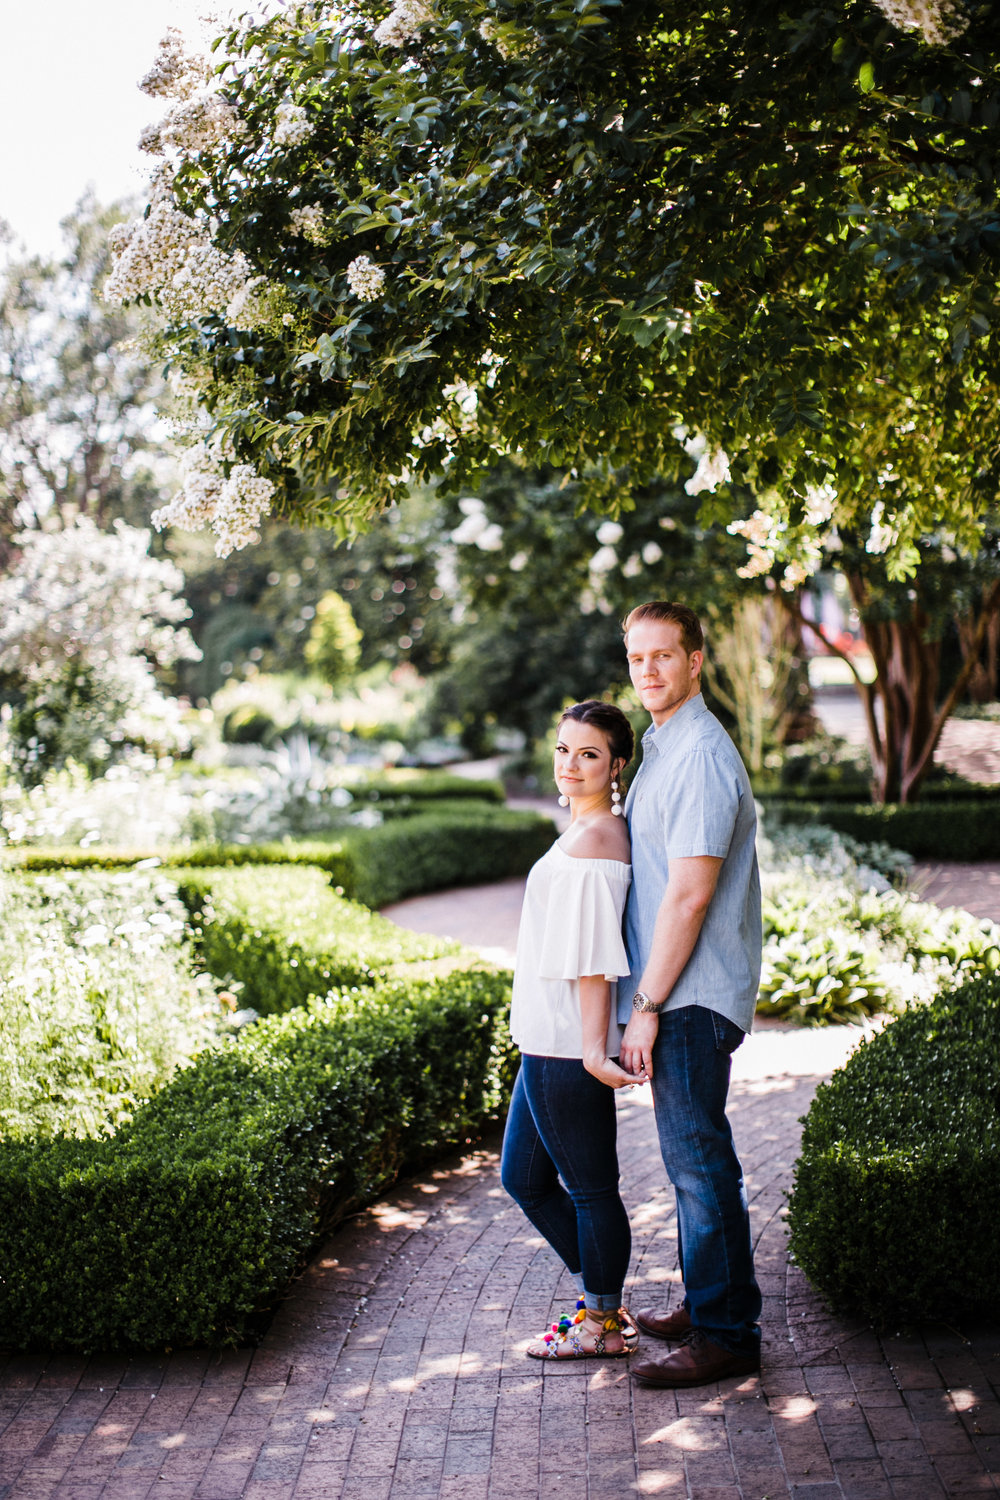 Karianne & Phillip Enagagement Session- Atlanta Botanical Gardens-151.jpg